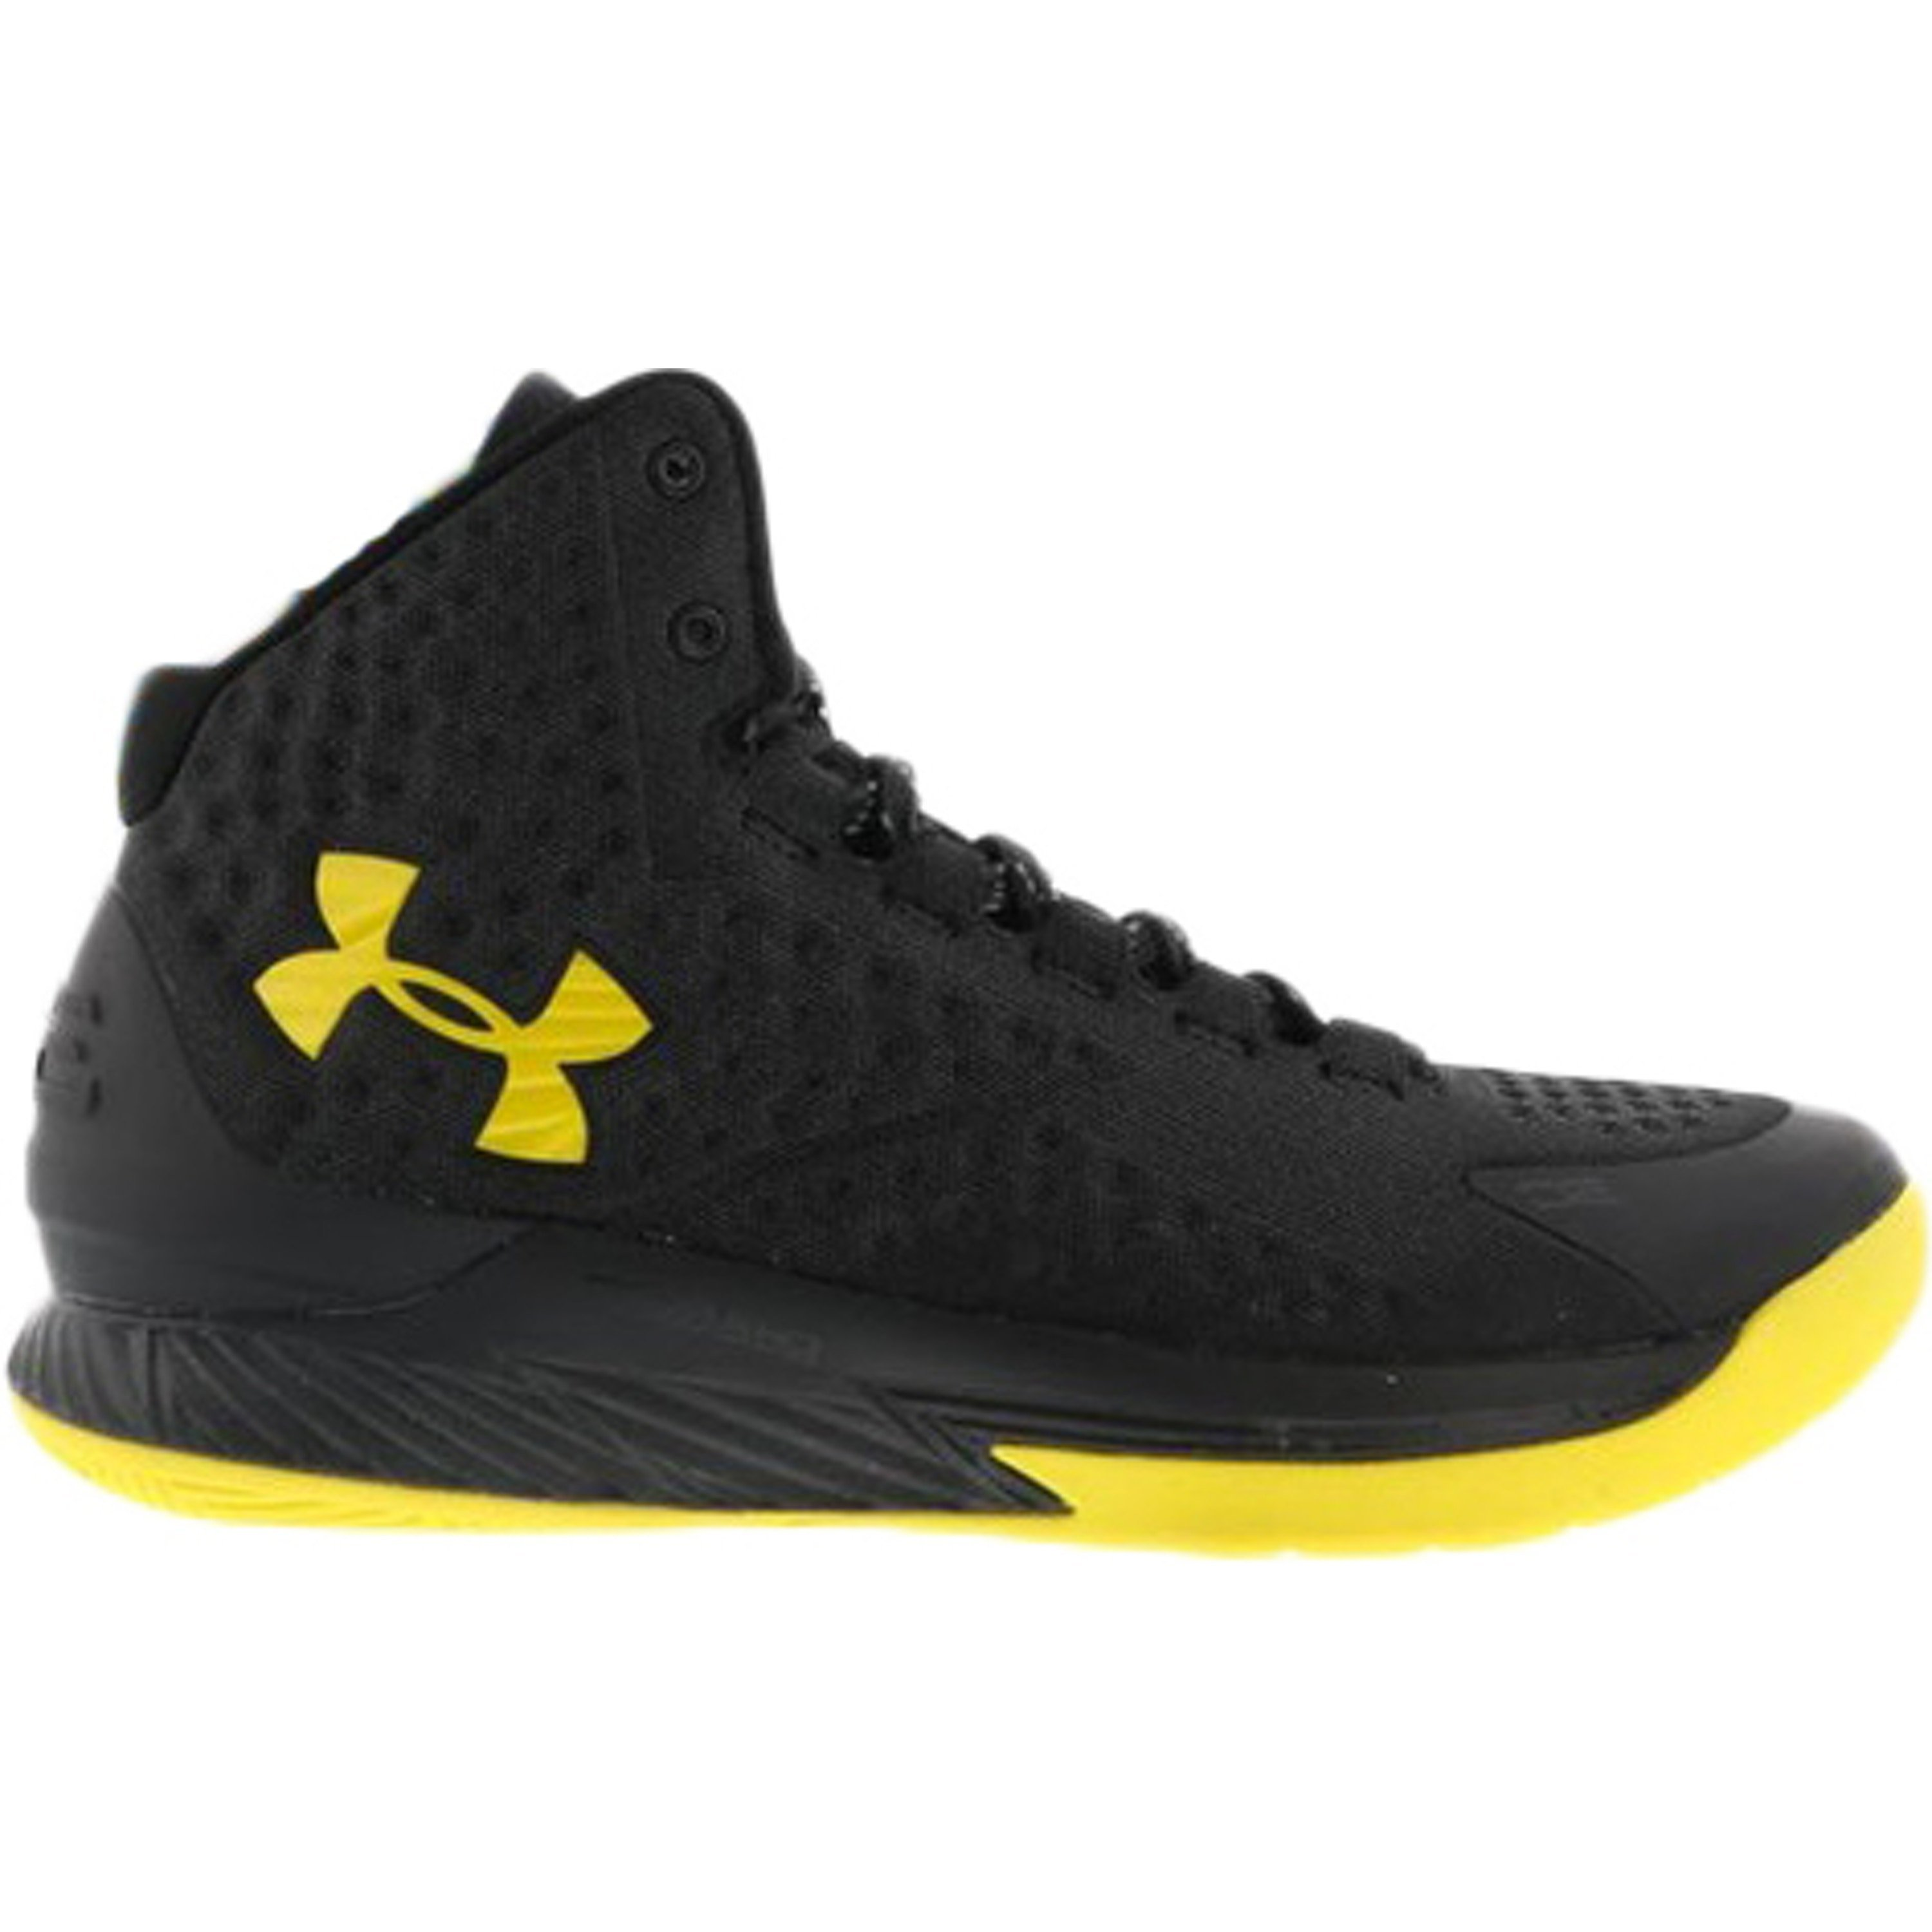 Under Armour Curry 1 Championship Pack Black (1287487-100)